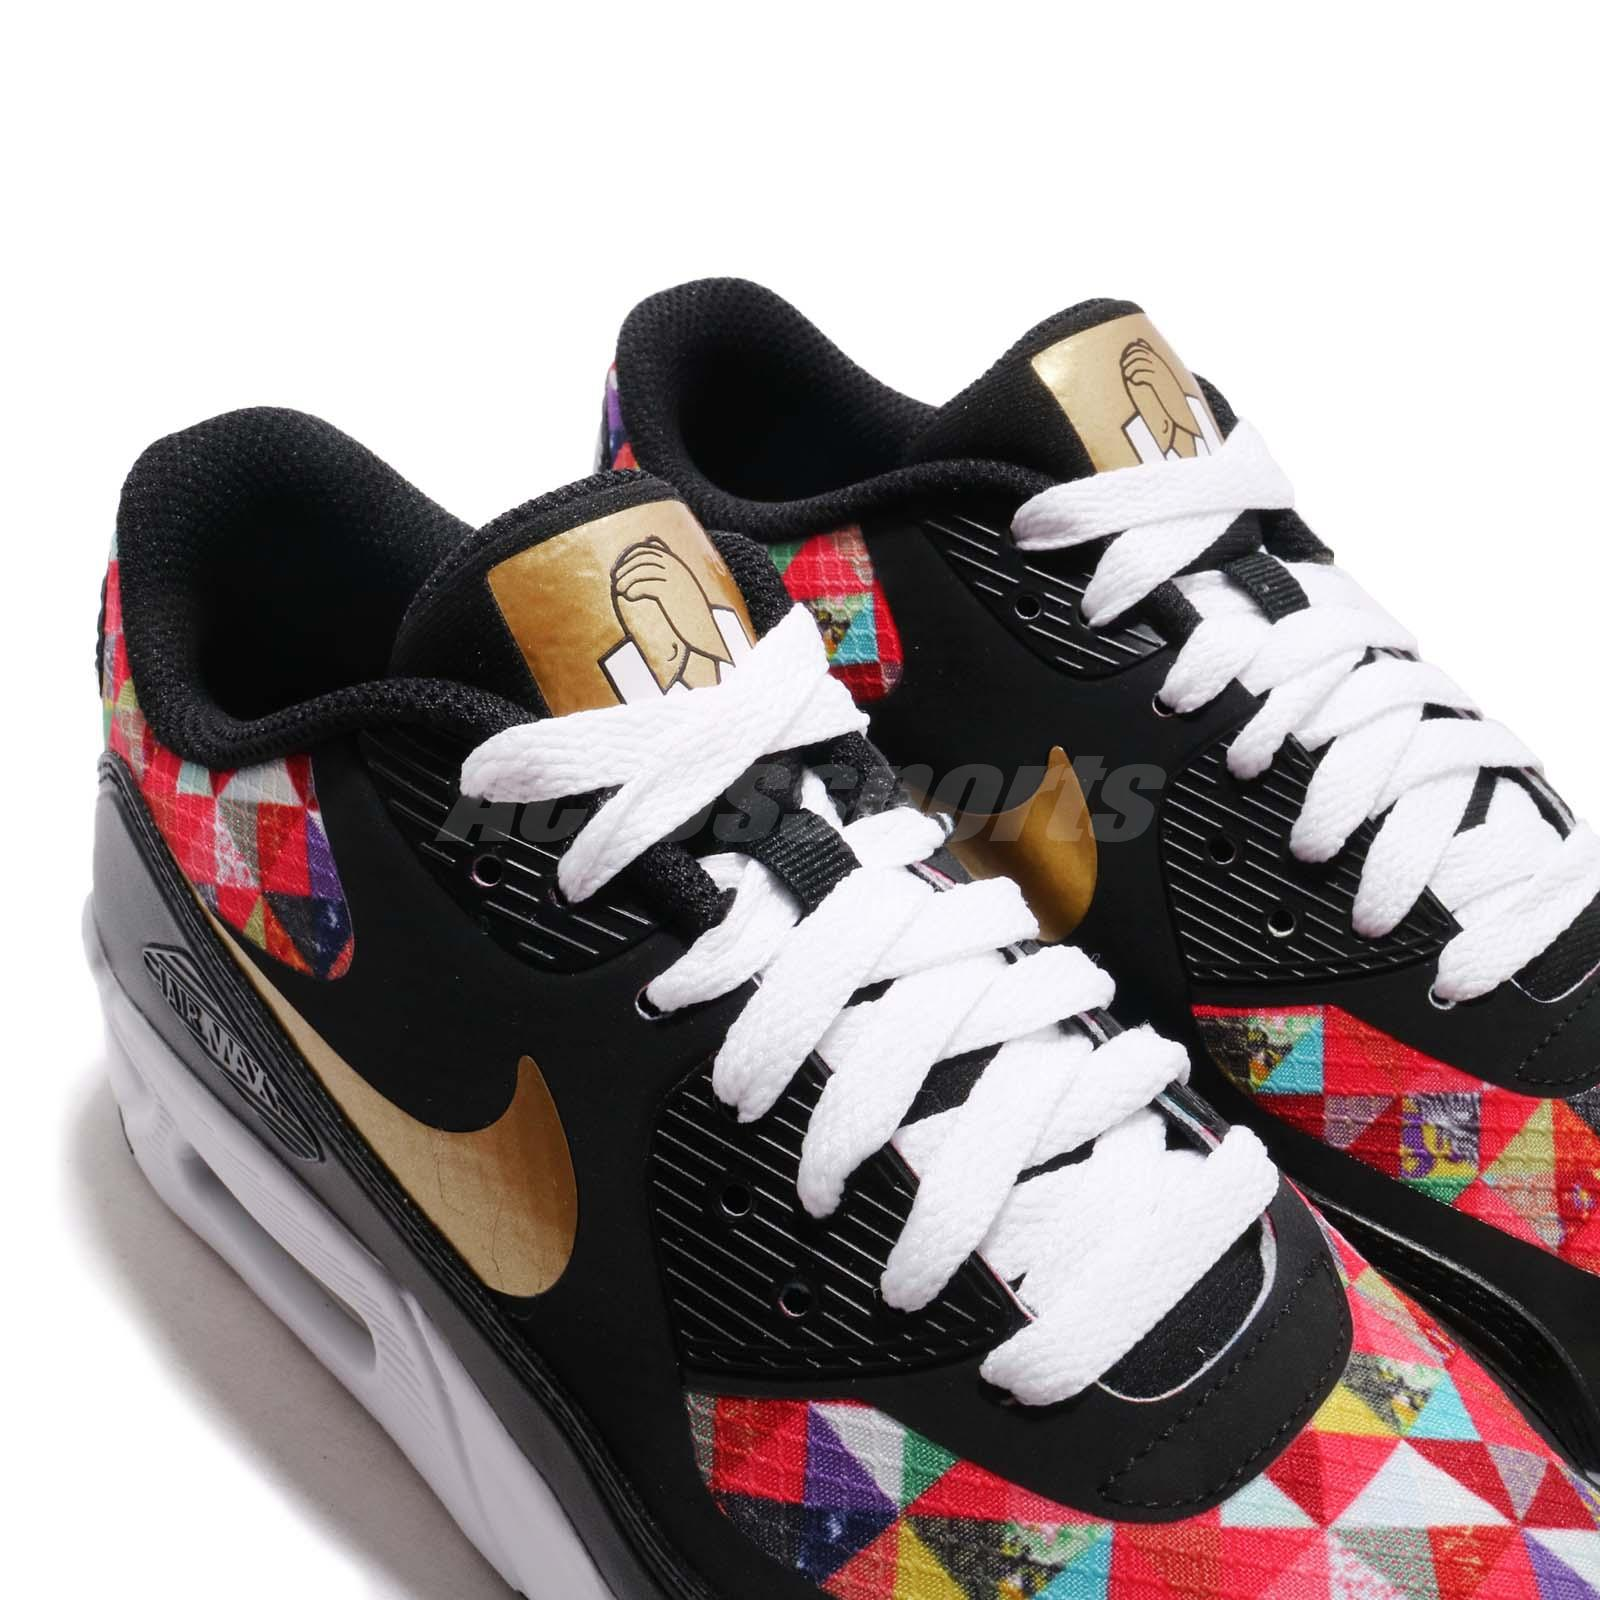 Details about Nike Air Max 90 Ultra 2.0 BG CNY Chinese New Year Kid Women Shoes BV6659 011